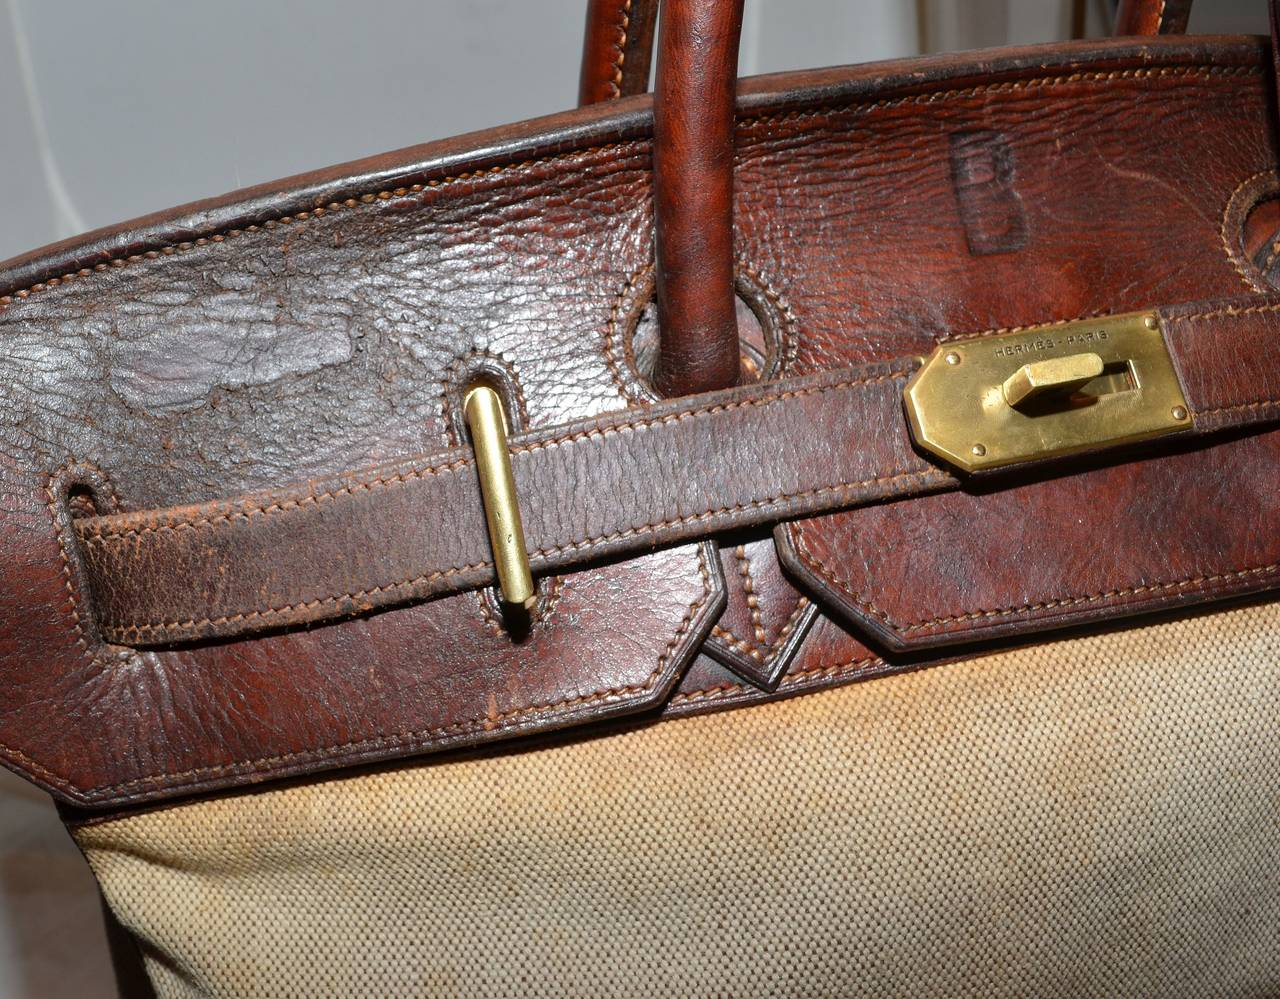 Hermes Vintage 1959 Haut a Courroie HAC Bag at 1stdibs